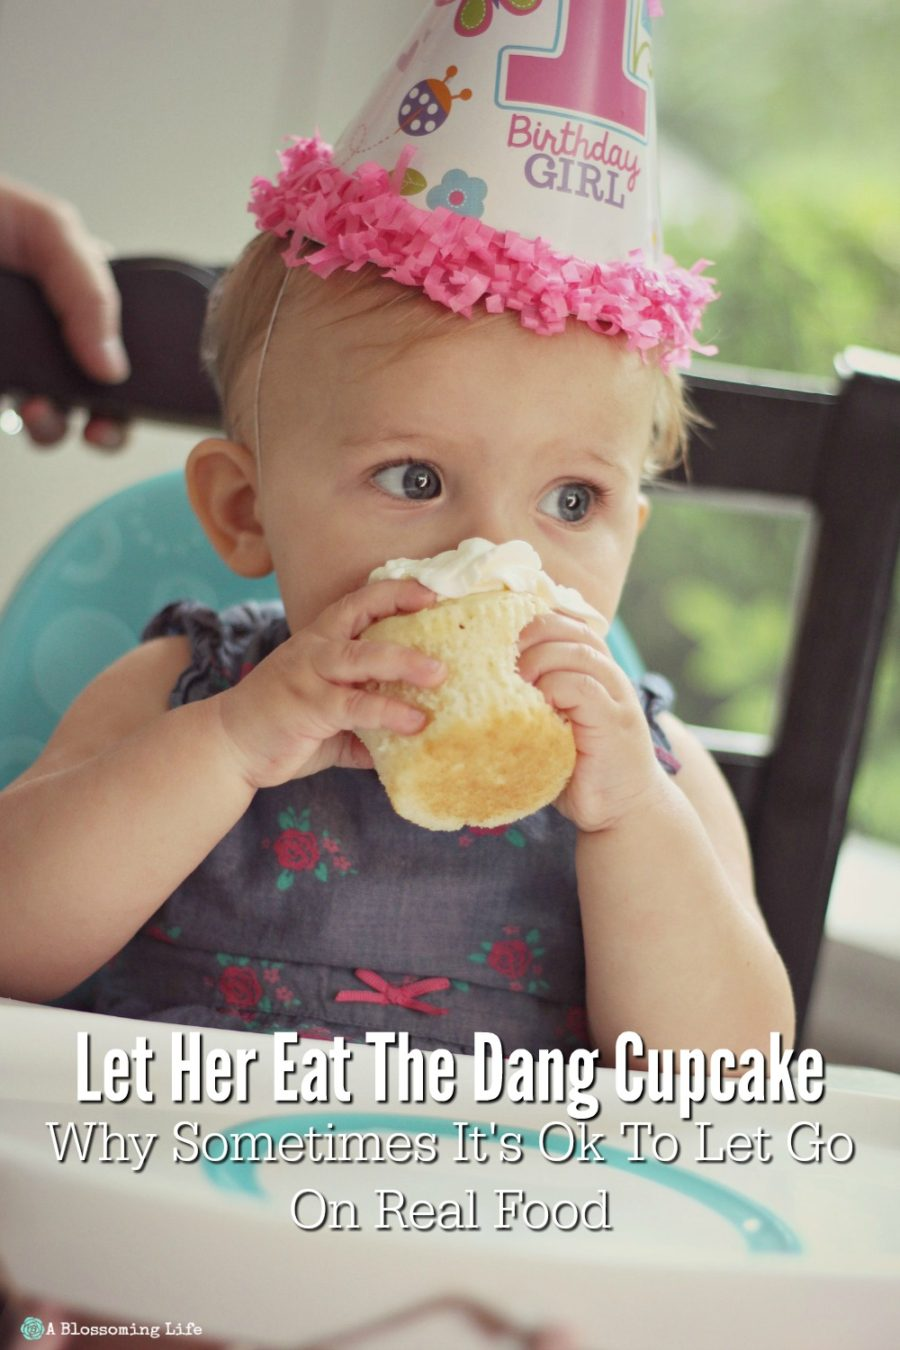 Let Her Eat The Dang Cupcake